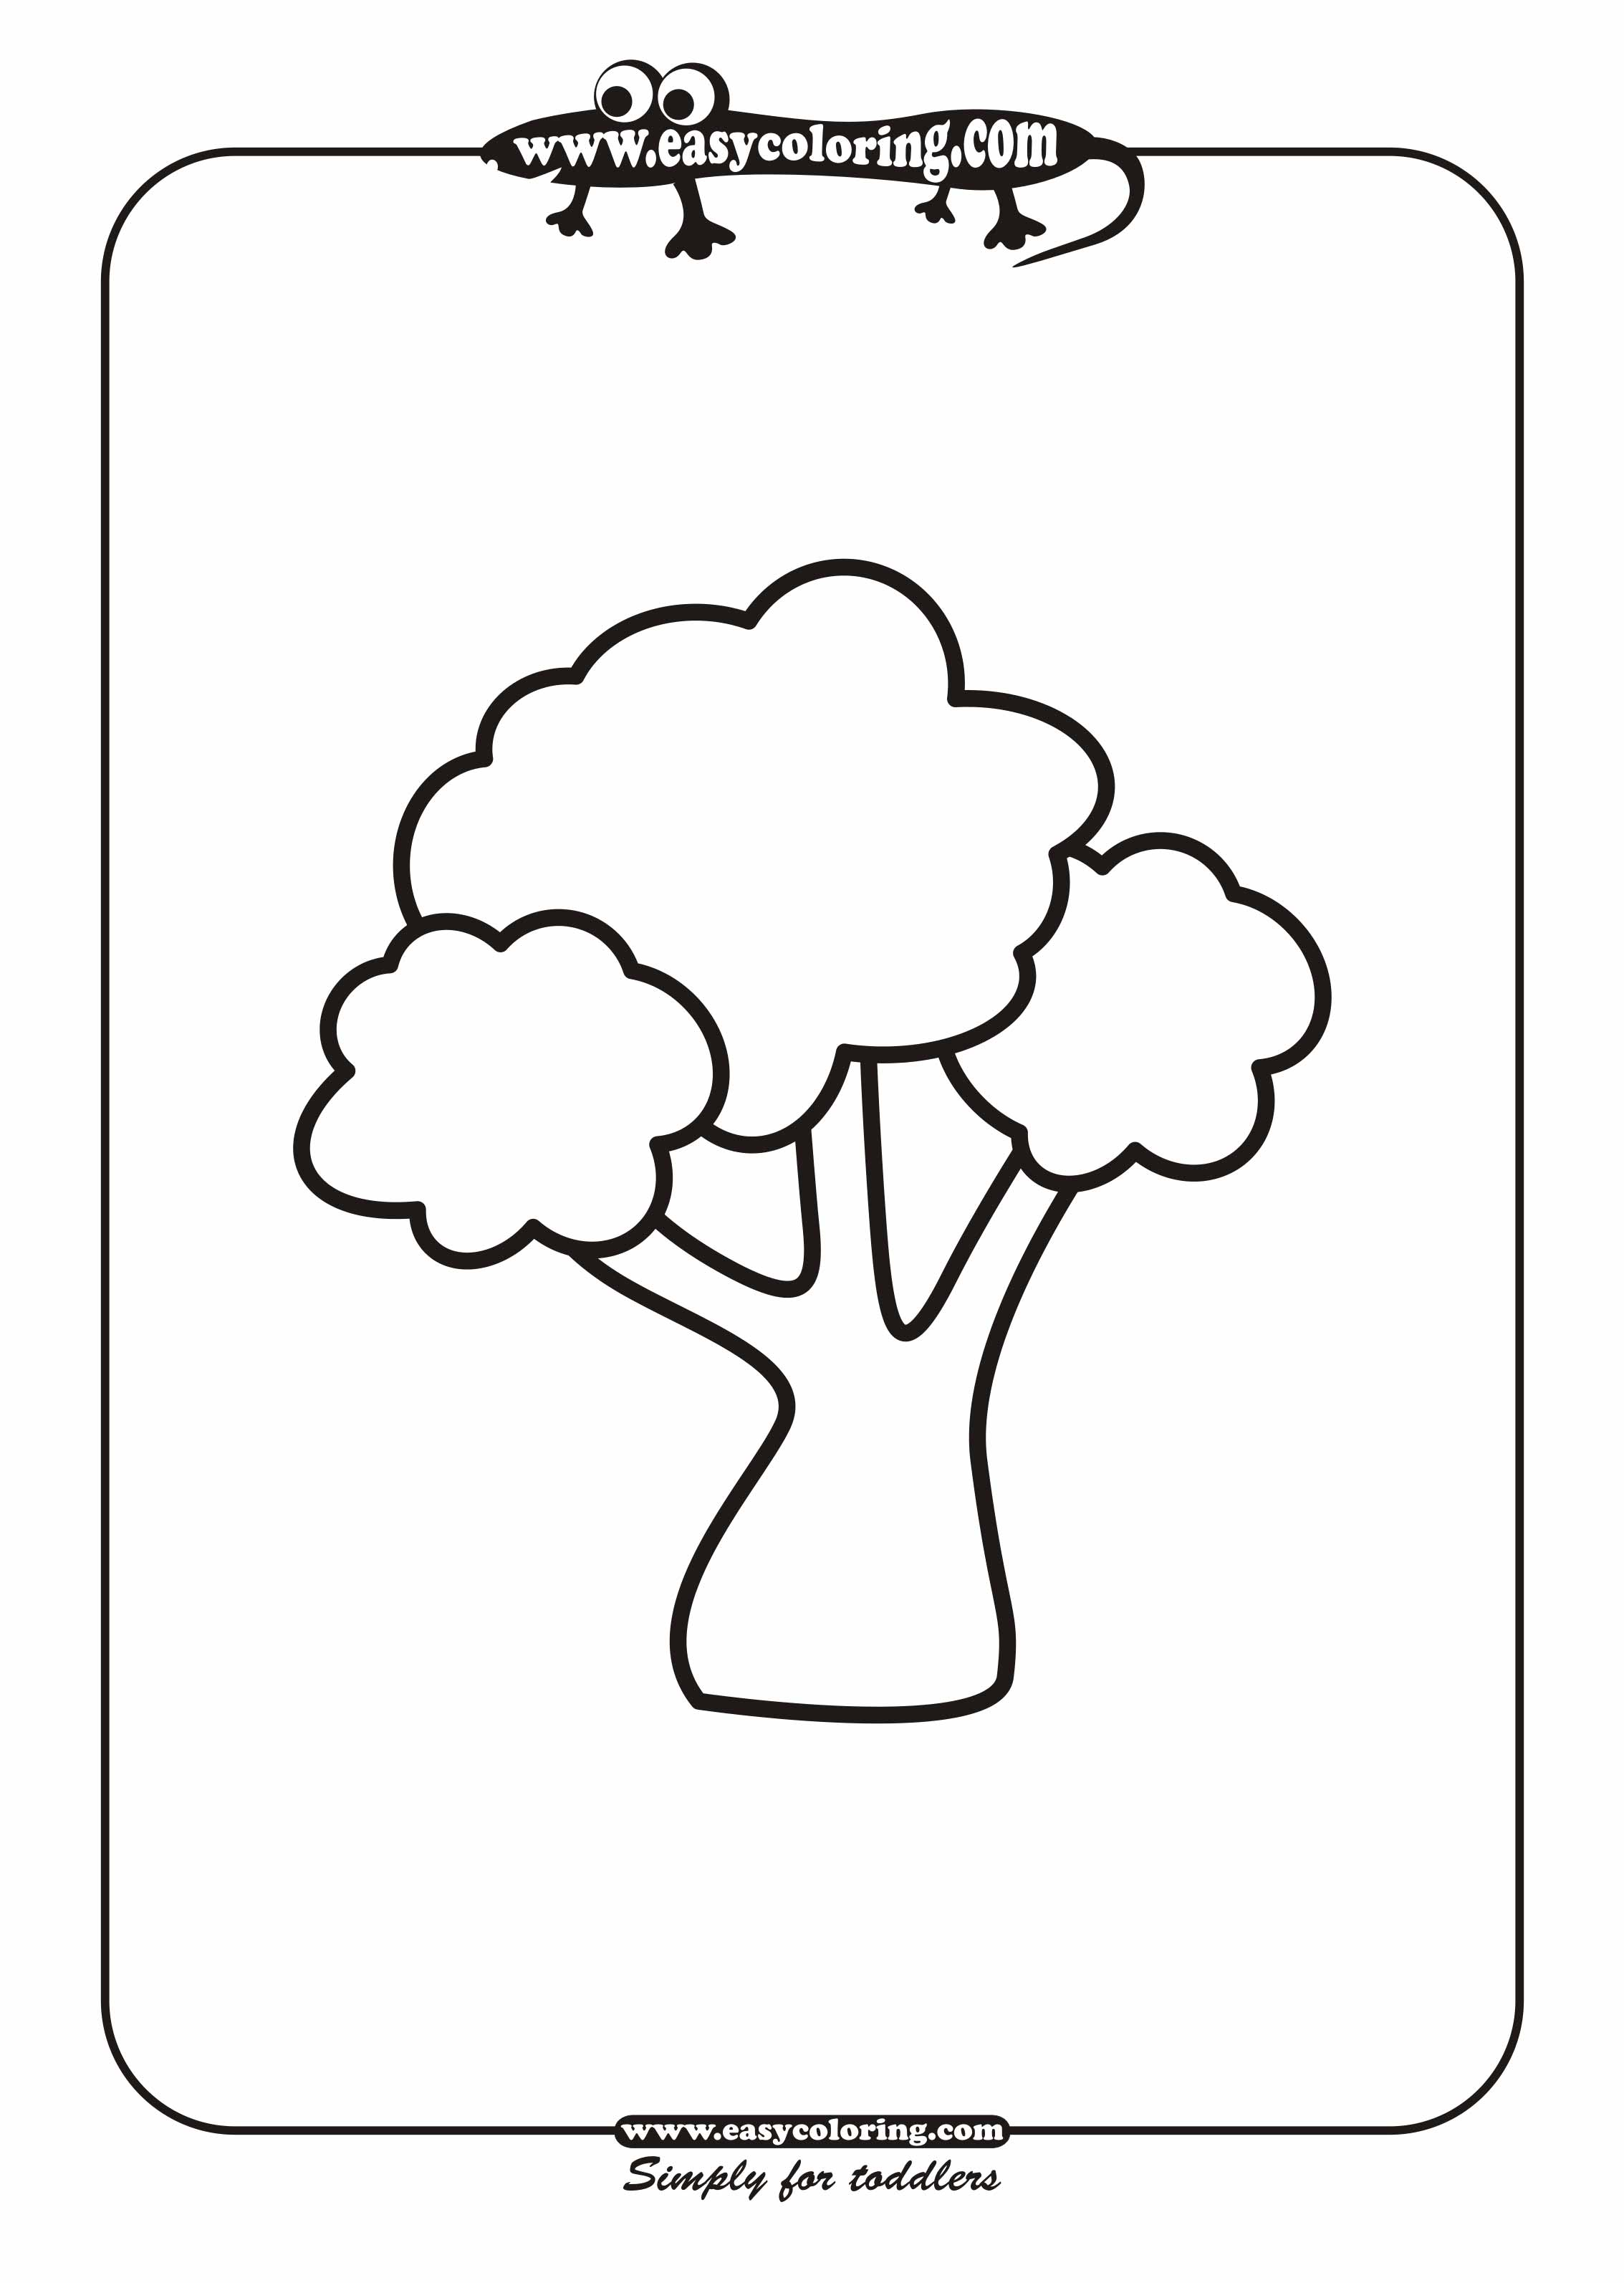 Tree Eleven Simple Trees Easy Coloring Pages For Toddlers Easy Tree Coloring Pages